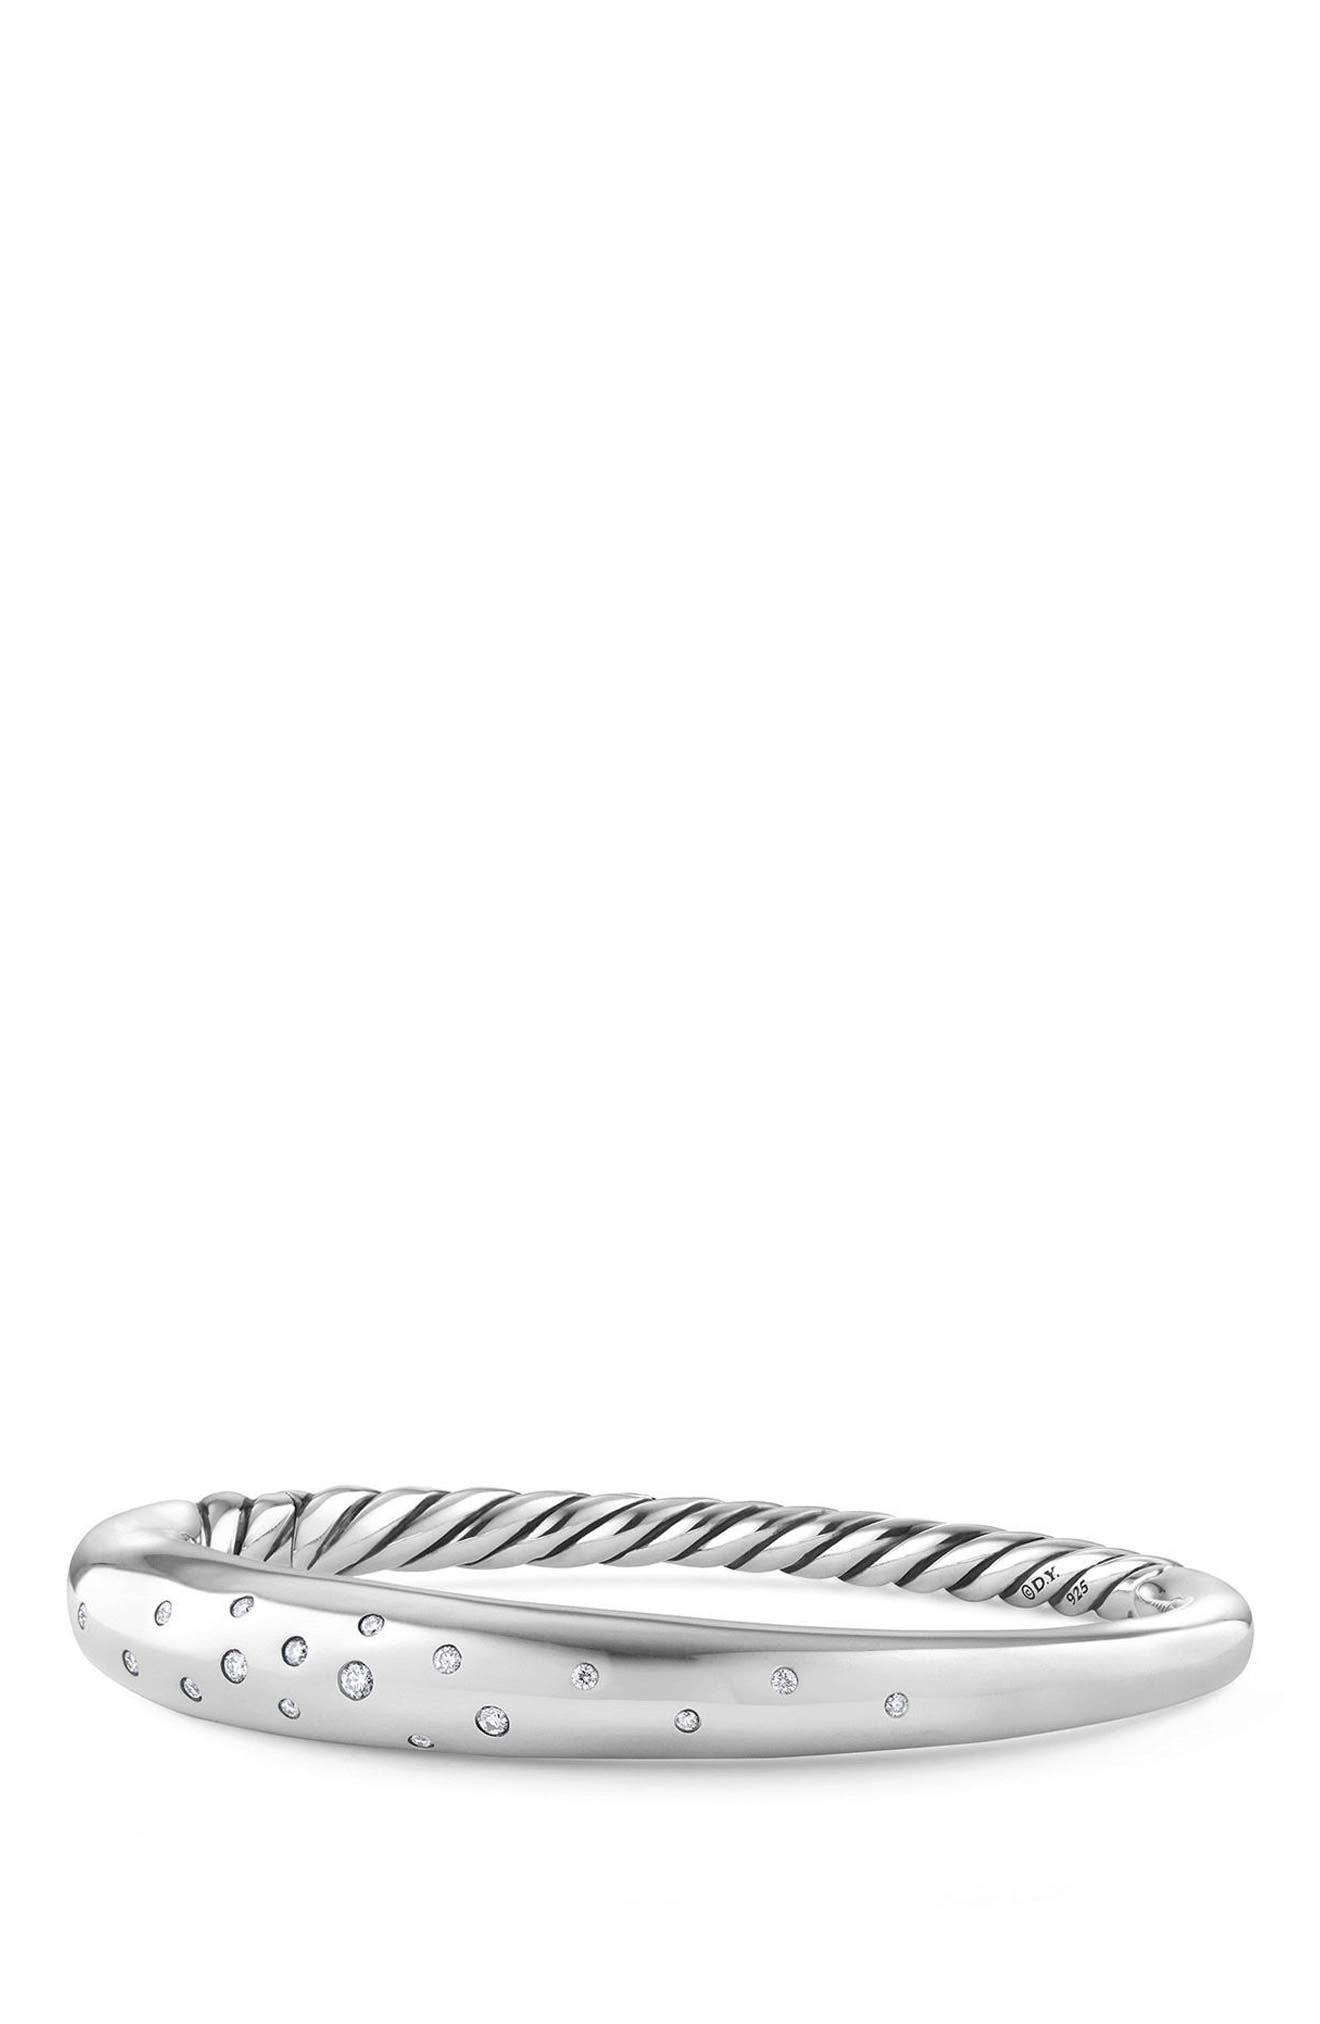 Pure Form Smooth Bracelet with Diamonds, 9.5mm,                         Main,                         color, Silver